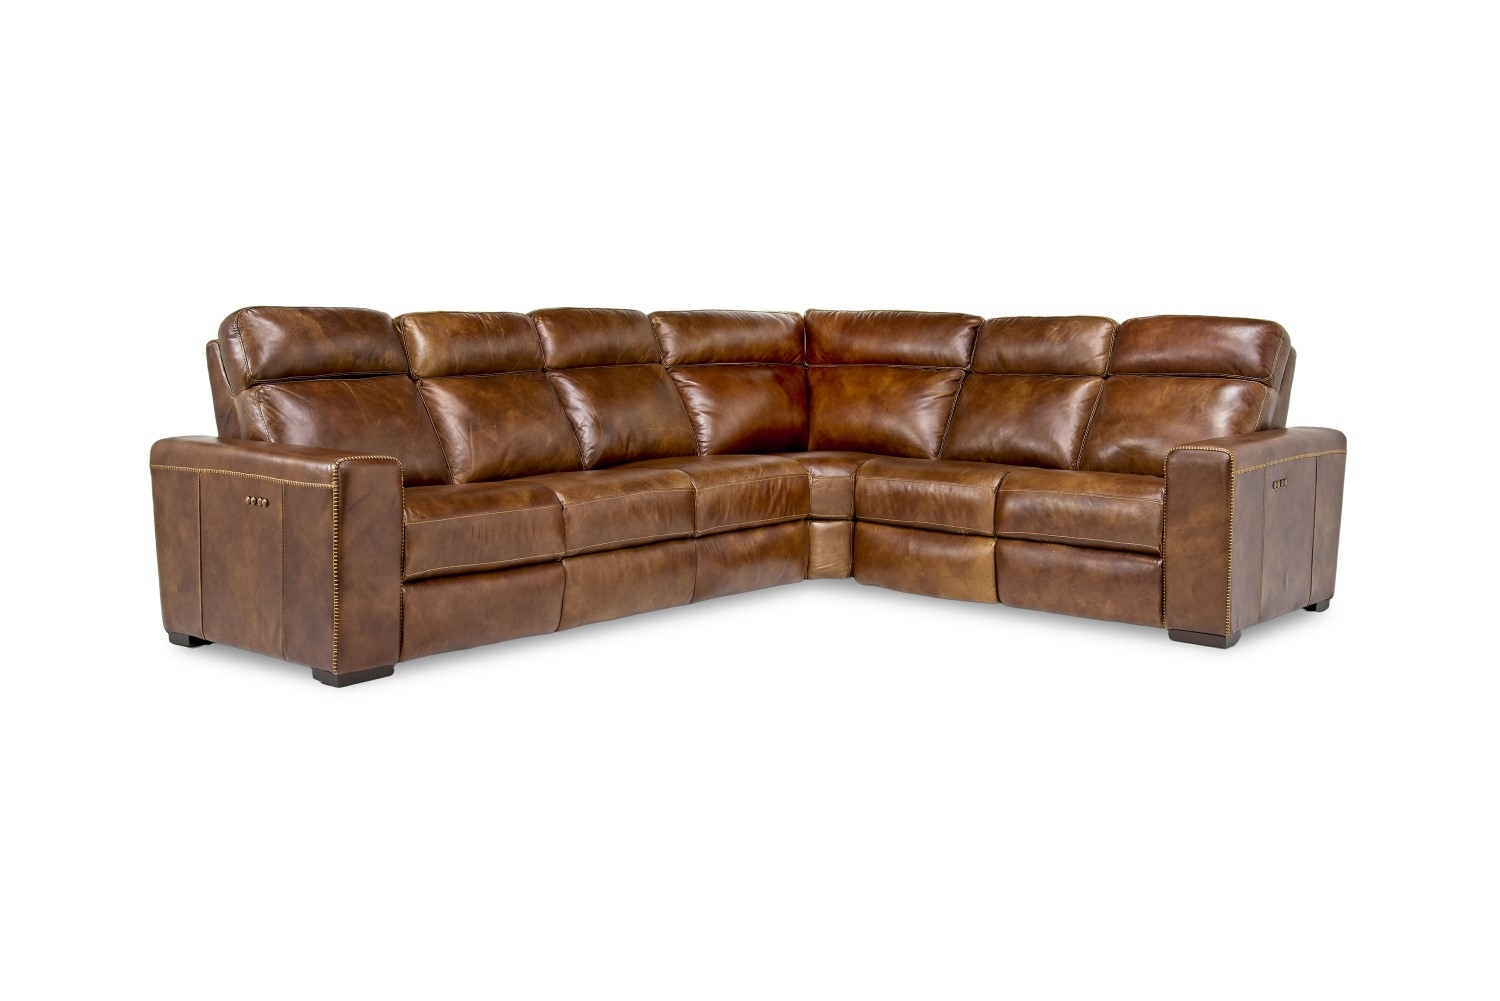 Sofa Online Purchase West Coast S Home Furniture Store Mor Furniture For Less